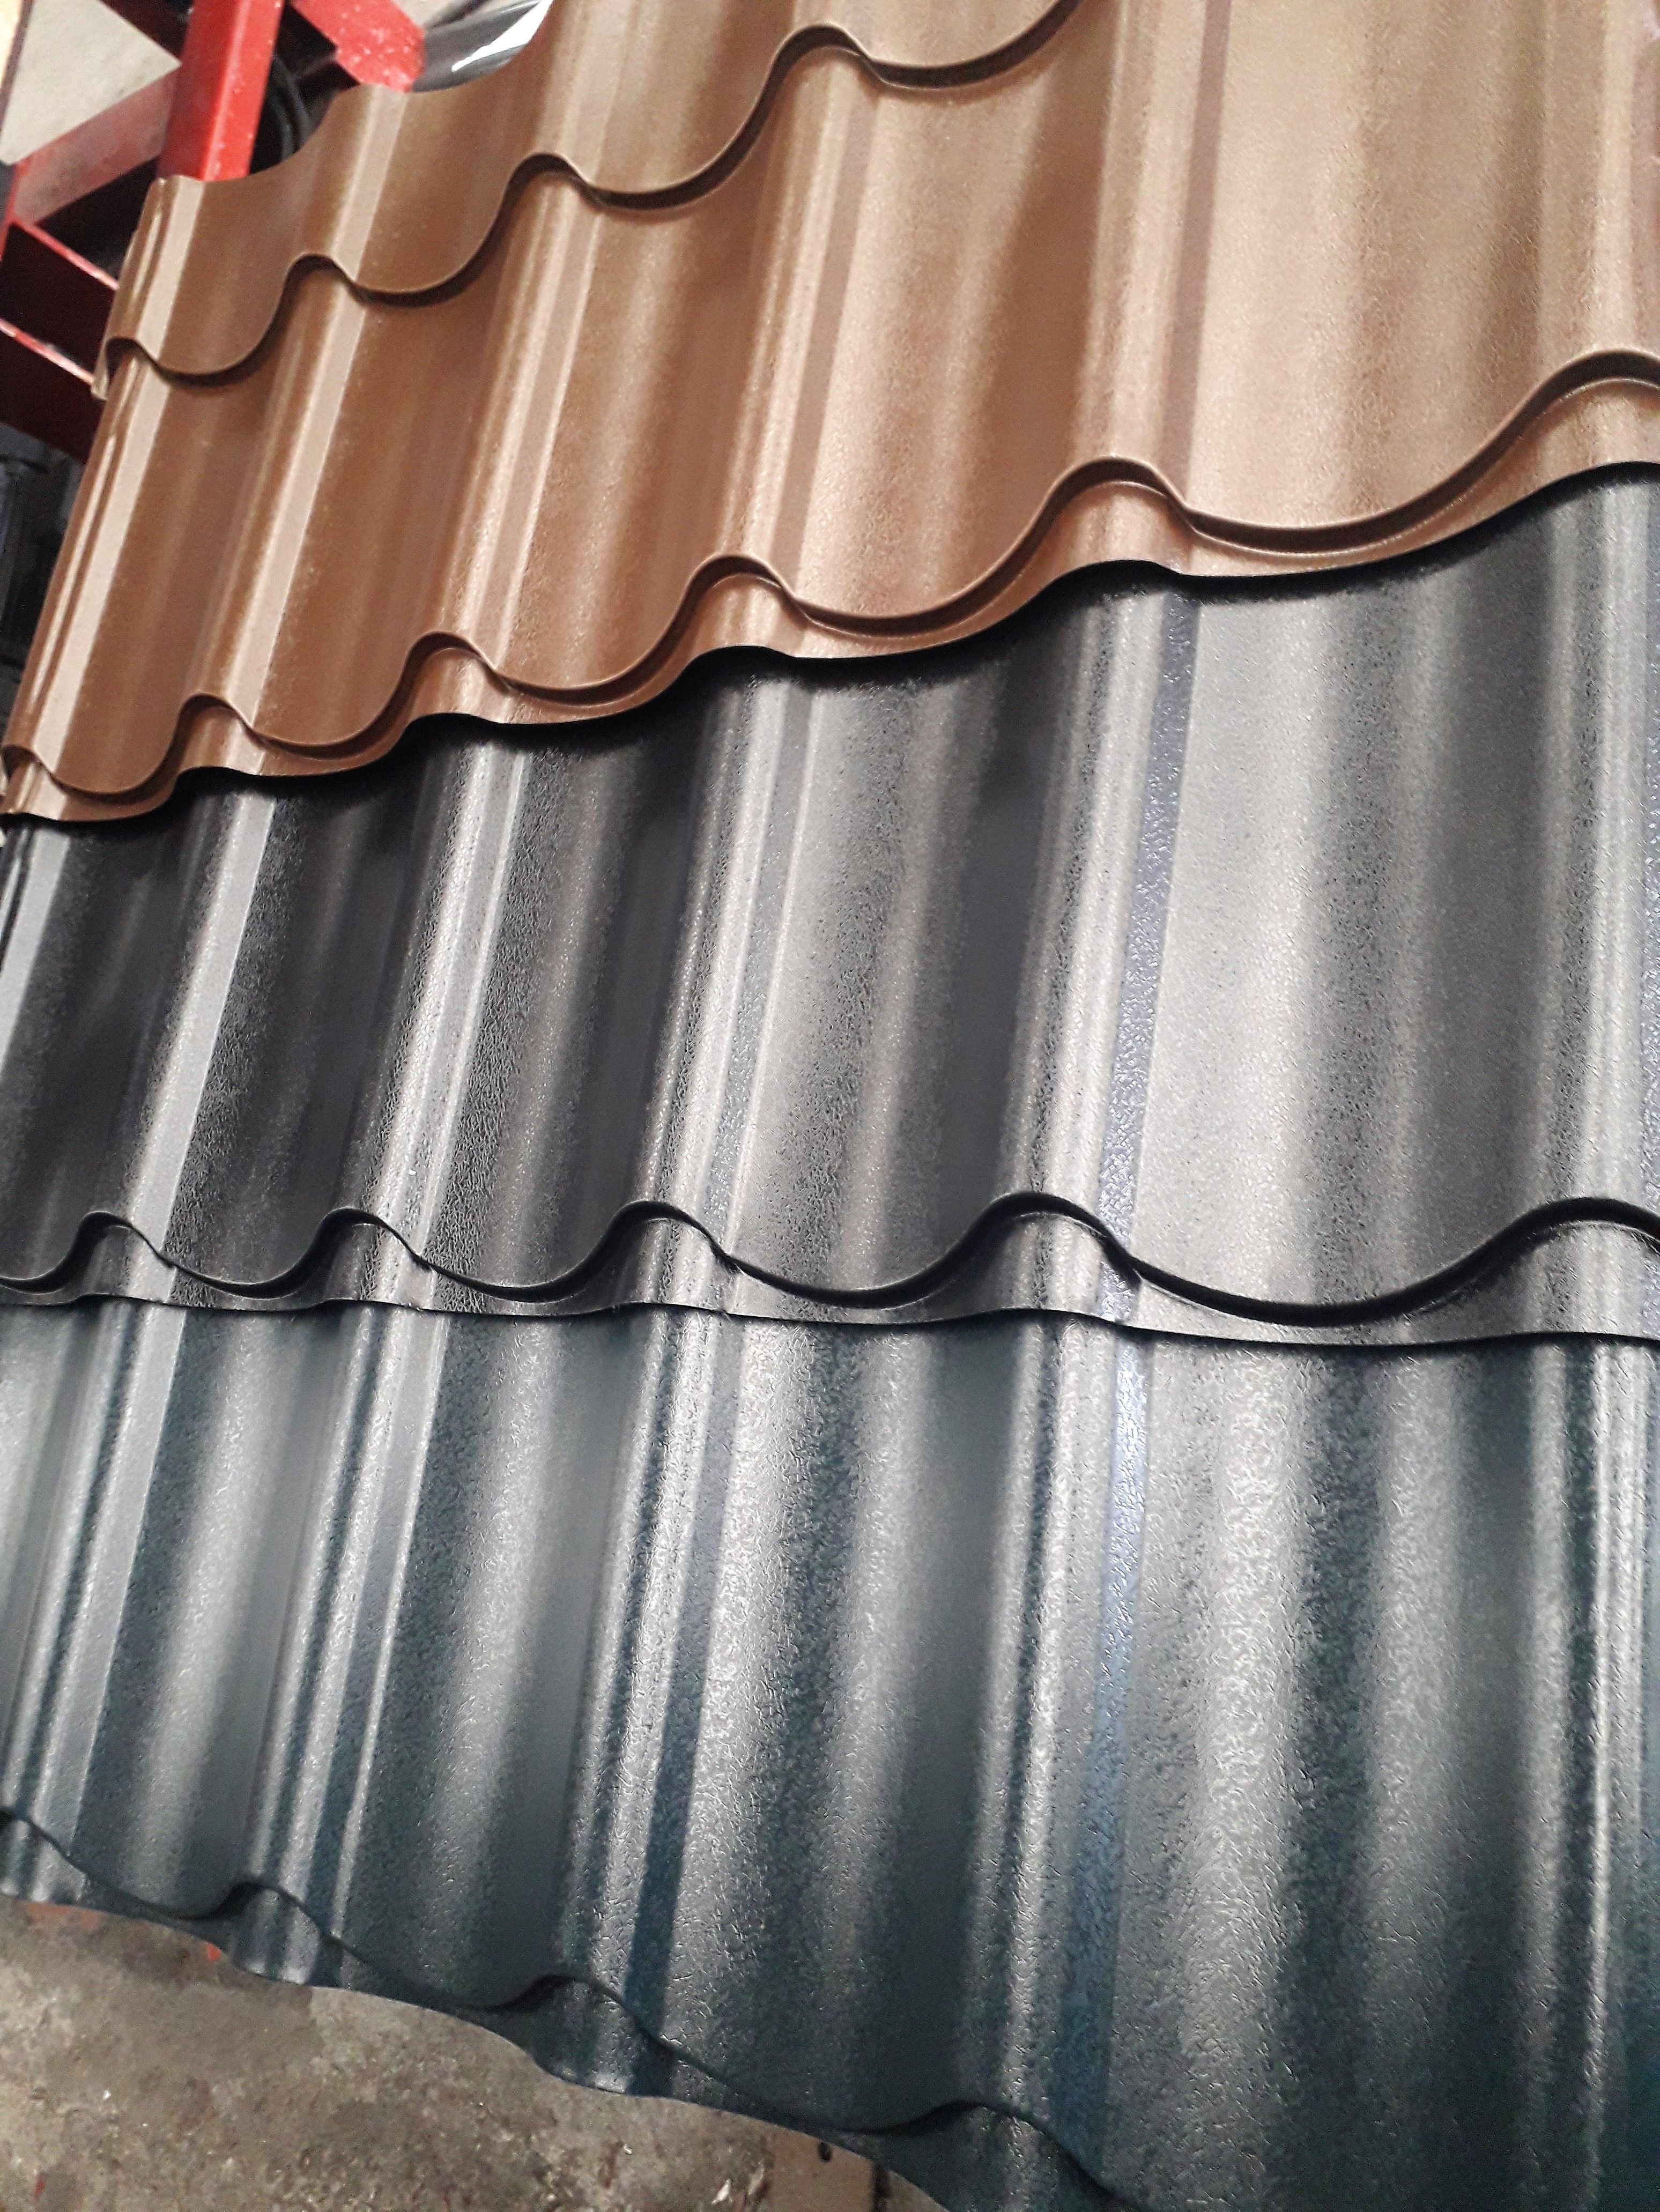 Tile Effect Cladding Gusclad Cladding Roof Cladding Tile Cladding